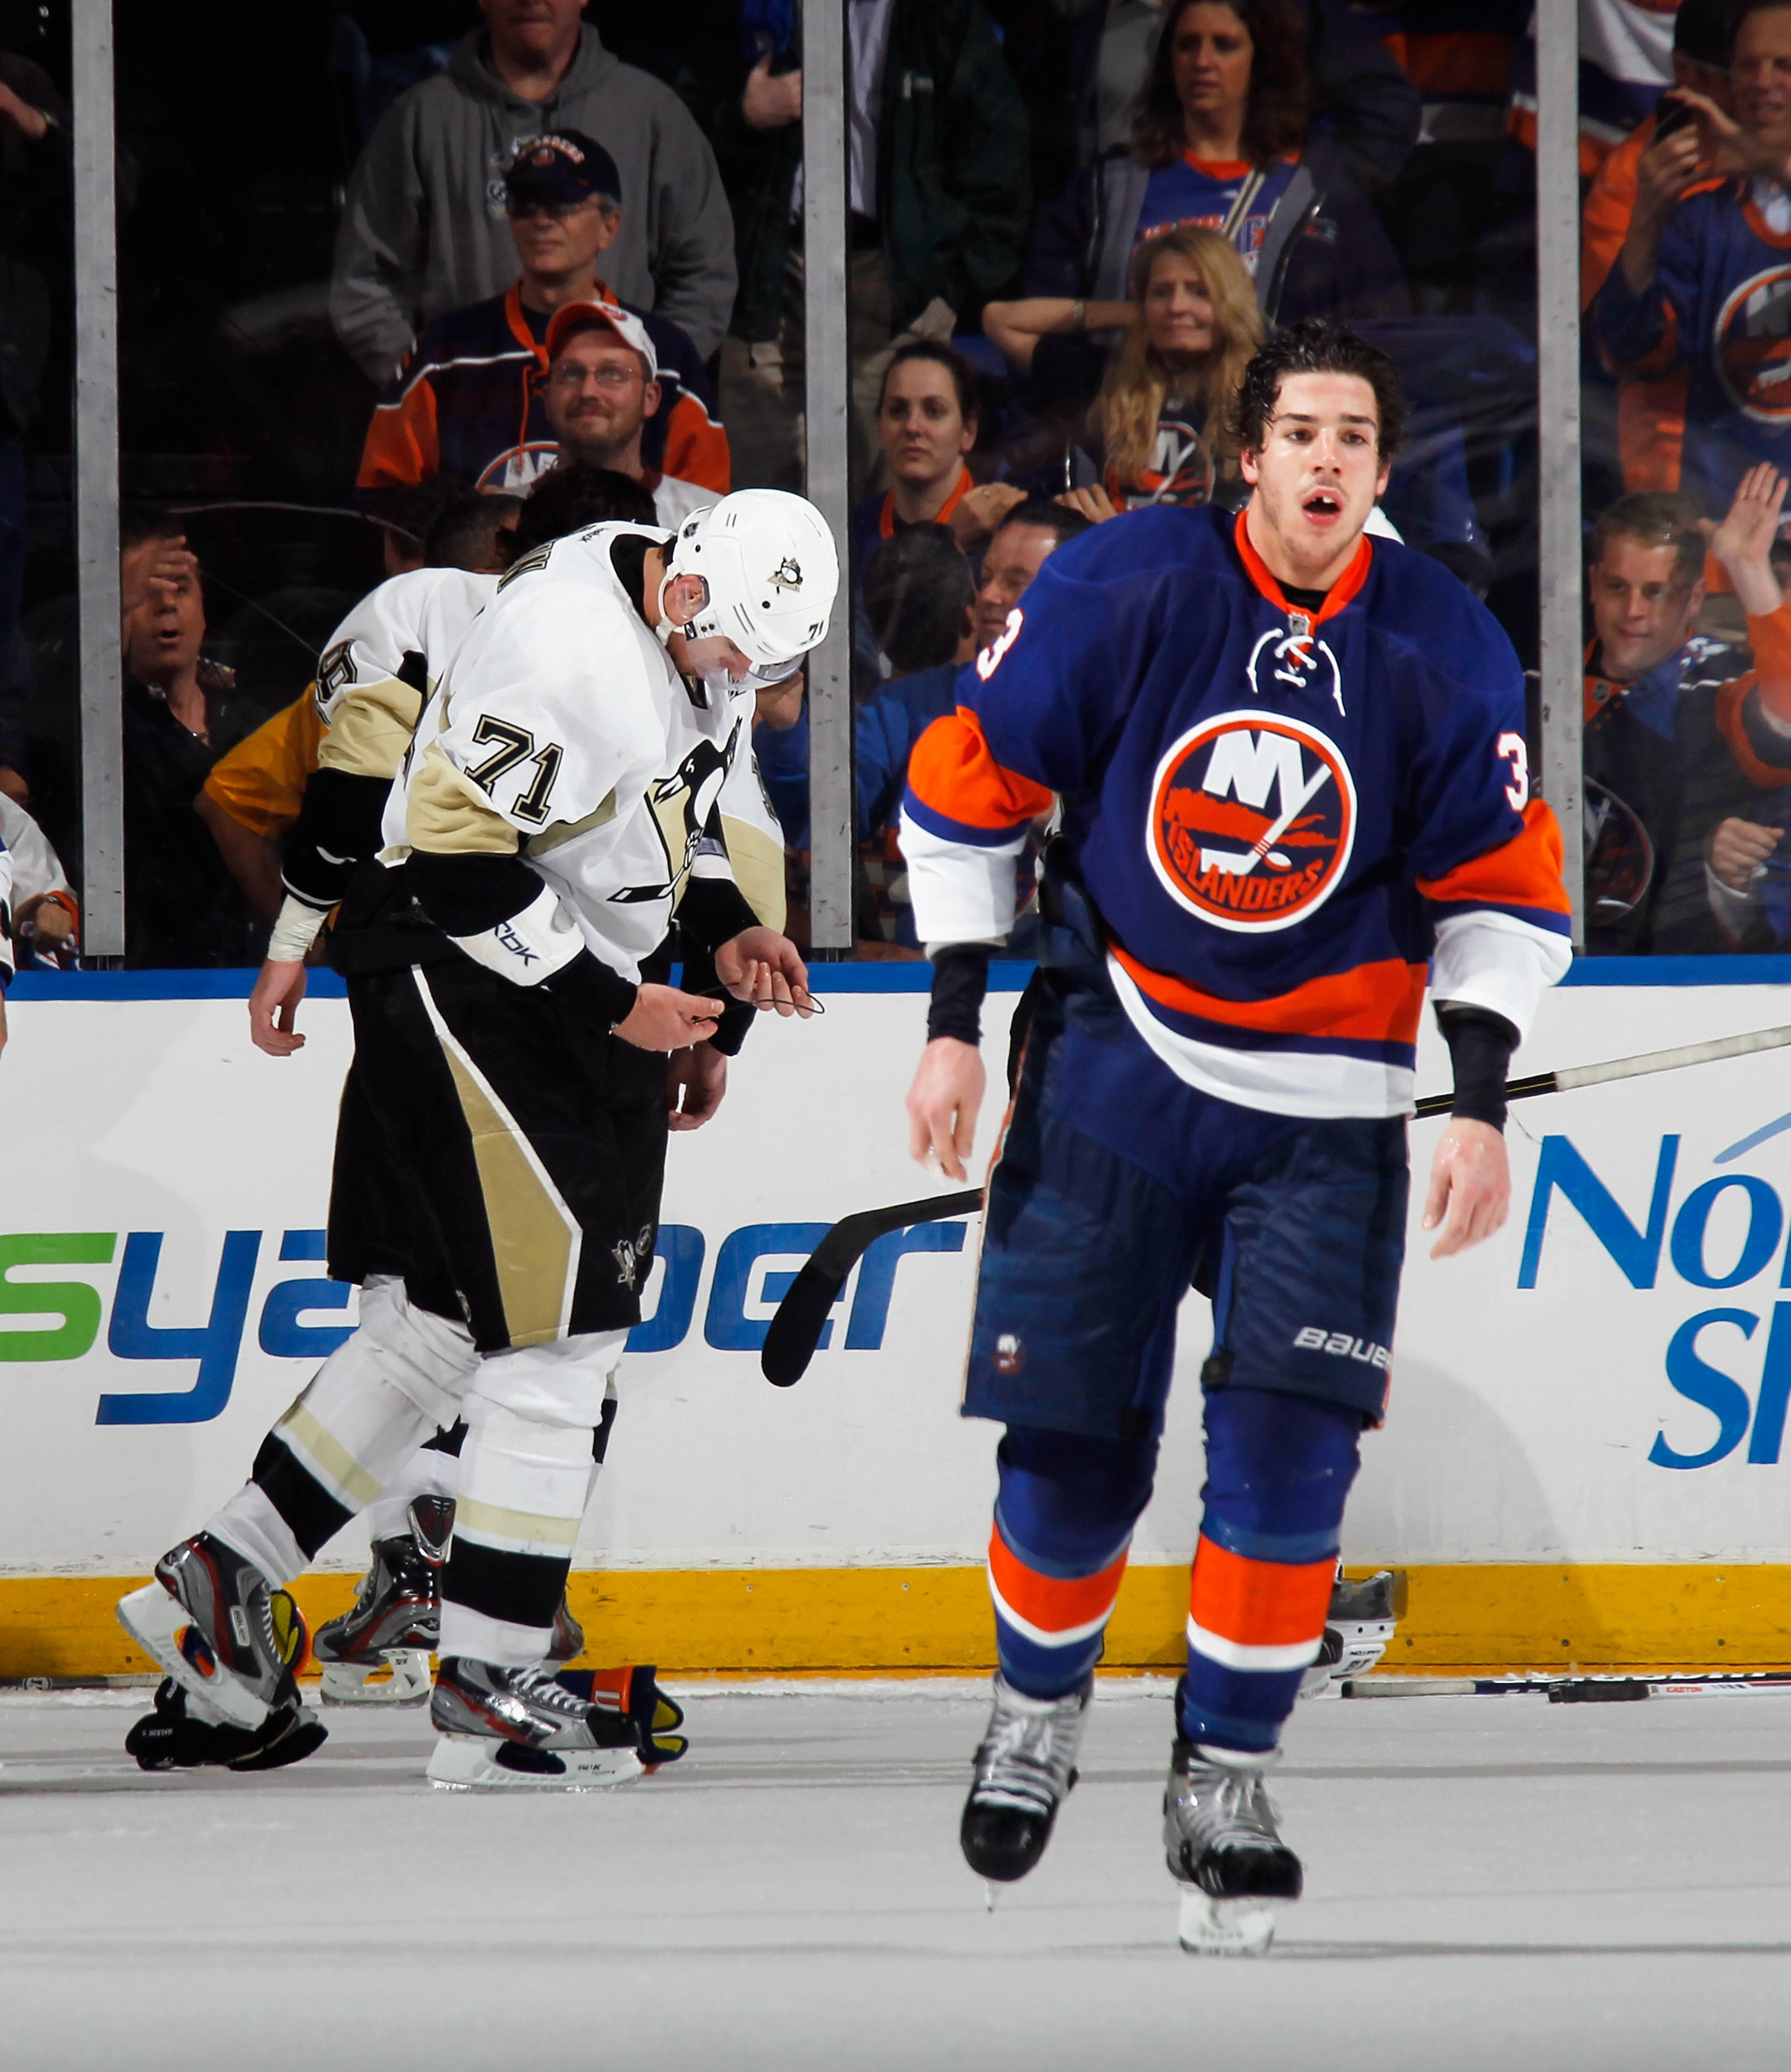 Next time have Malkin fight the linesman for you.